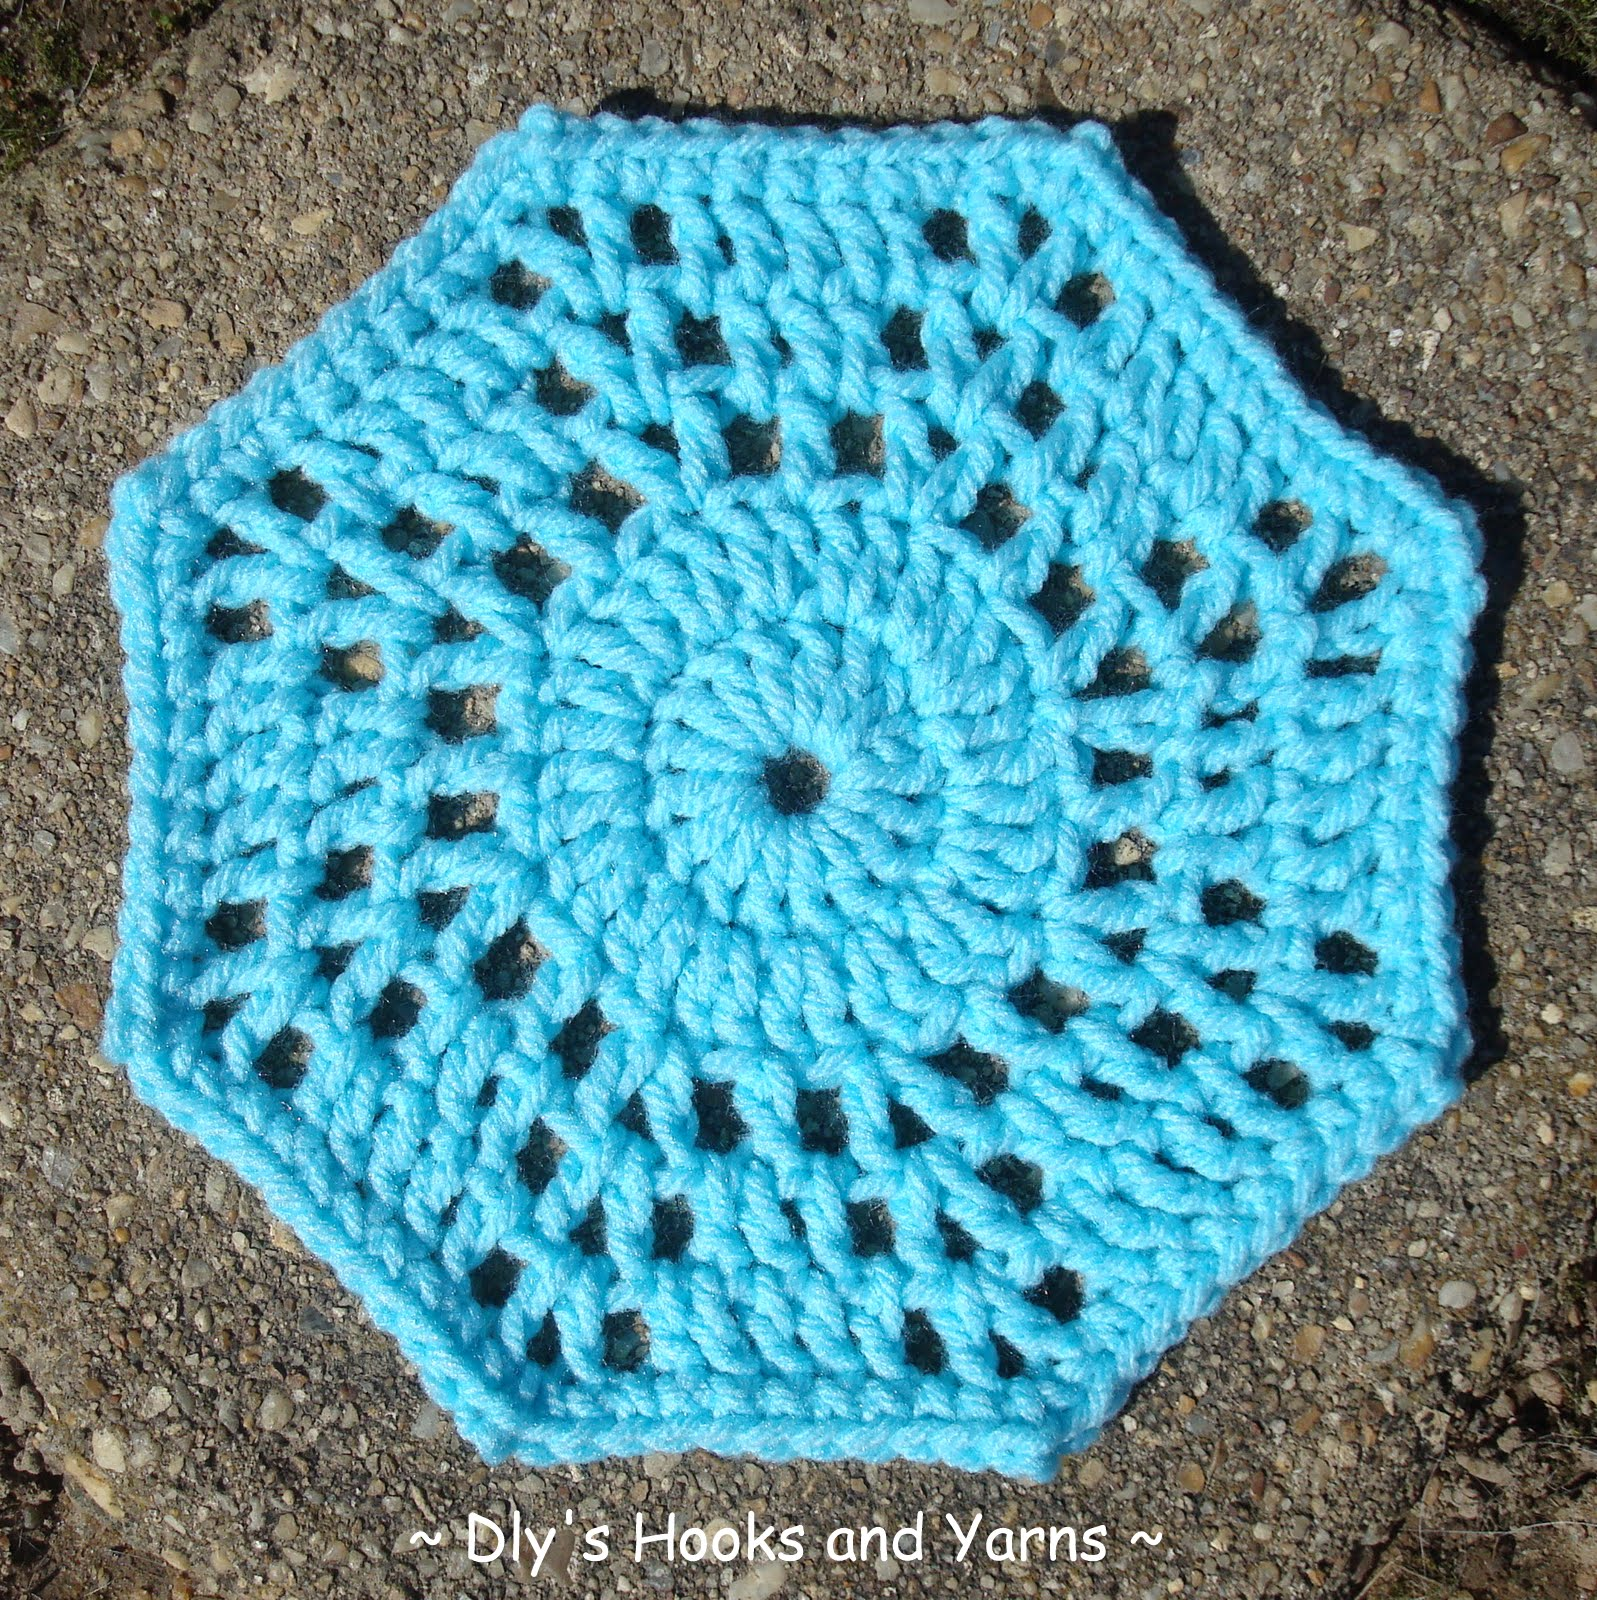 Octagon Baby Afghan Crochet Pattern : Dlys Hooks and Yarns ~: ~ an octogon motif & Two on Tuesday